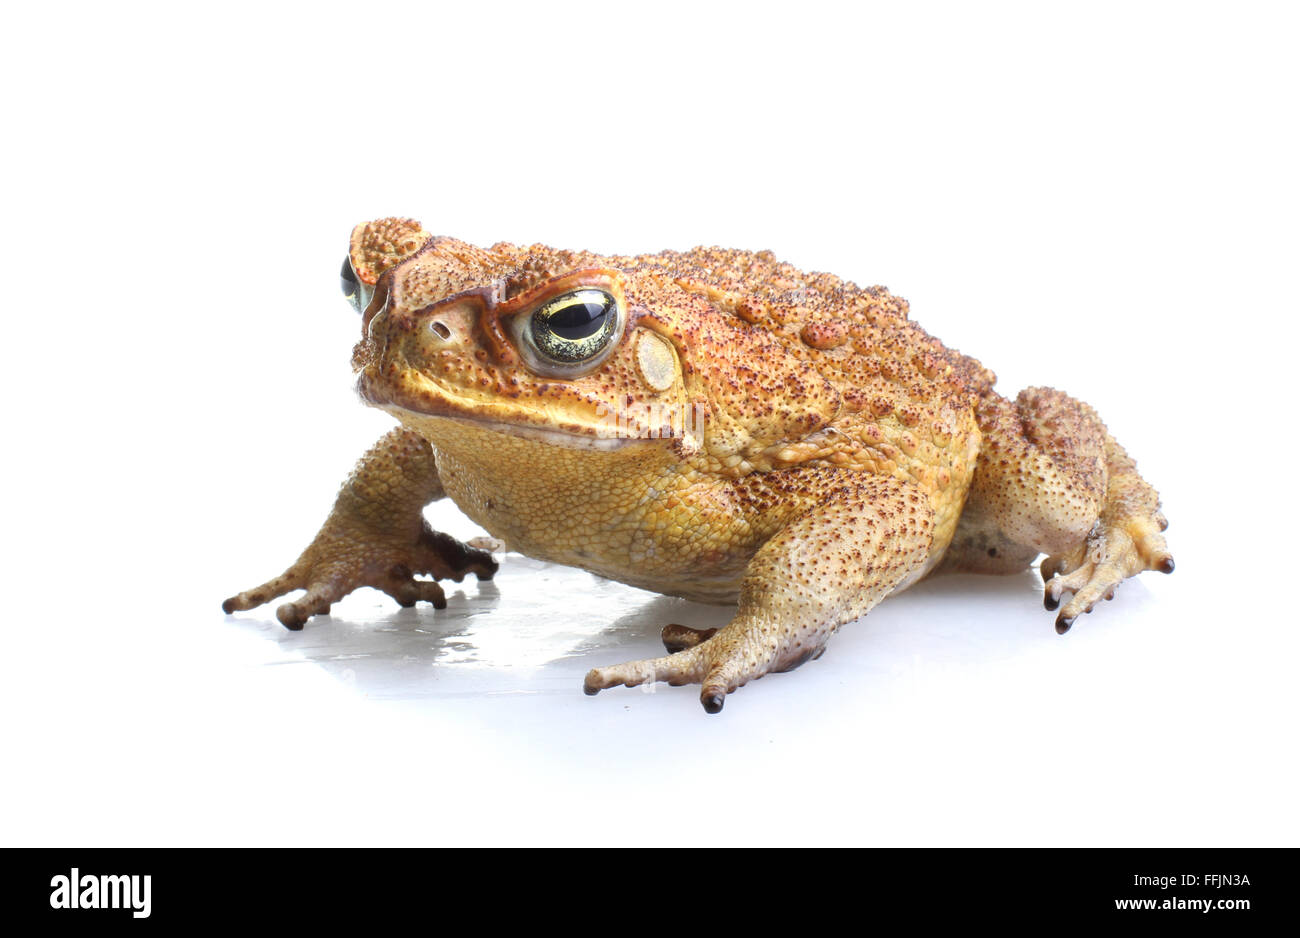 Cane Toad - Bufo marinus - or giant neotropical or marine toad.  Native to Central and South America  introduced - Stock Image